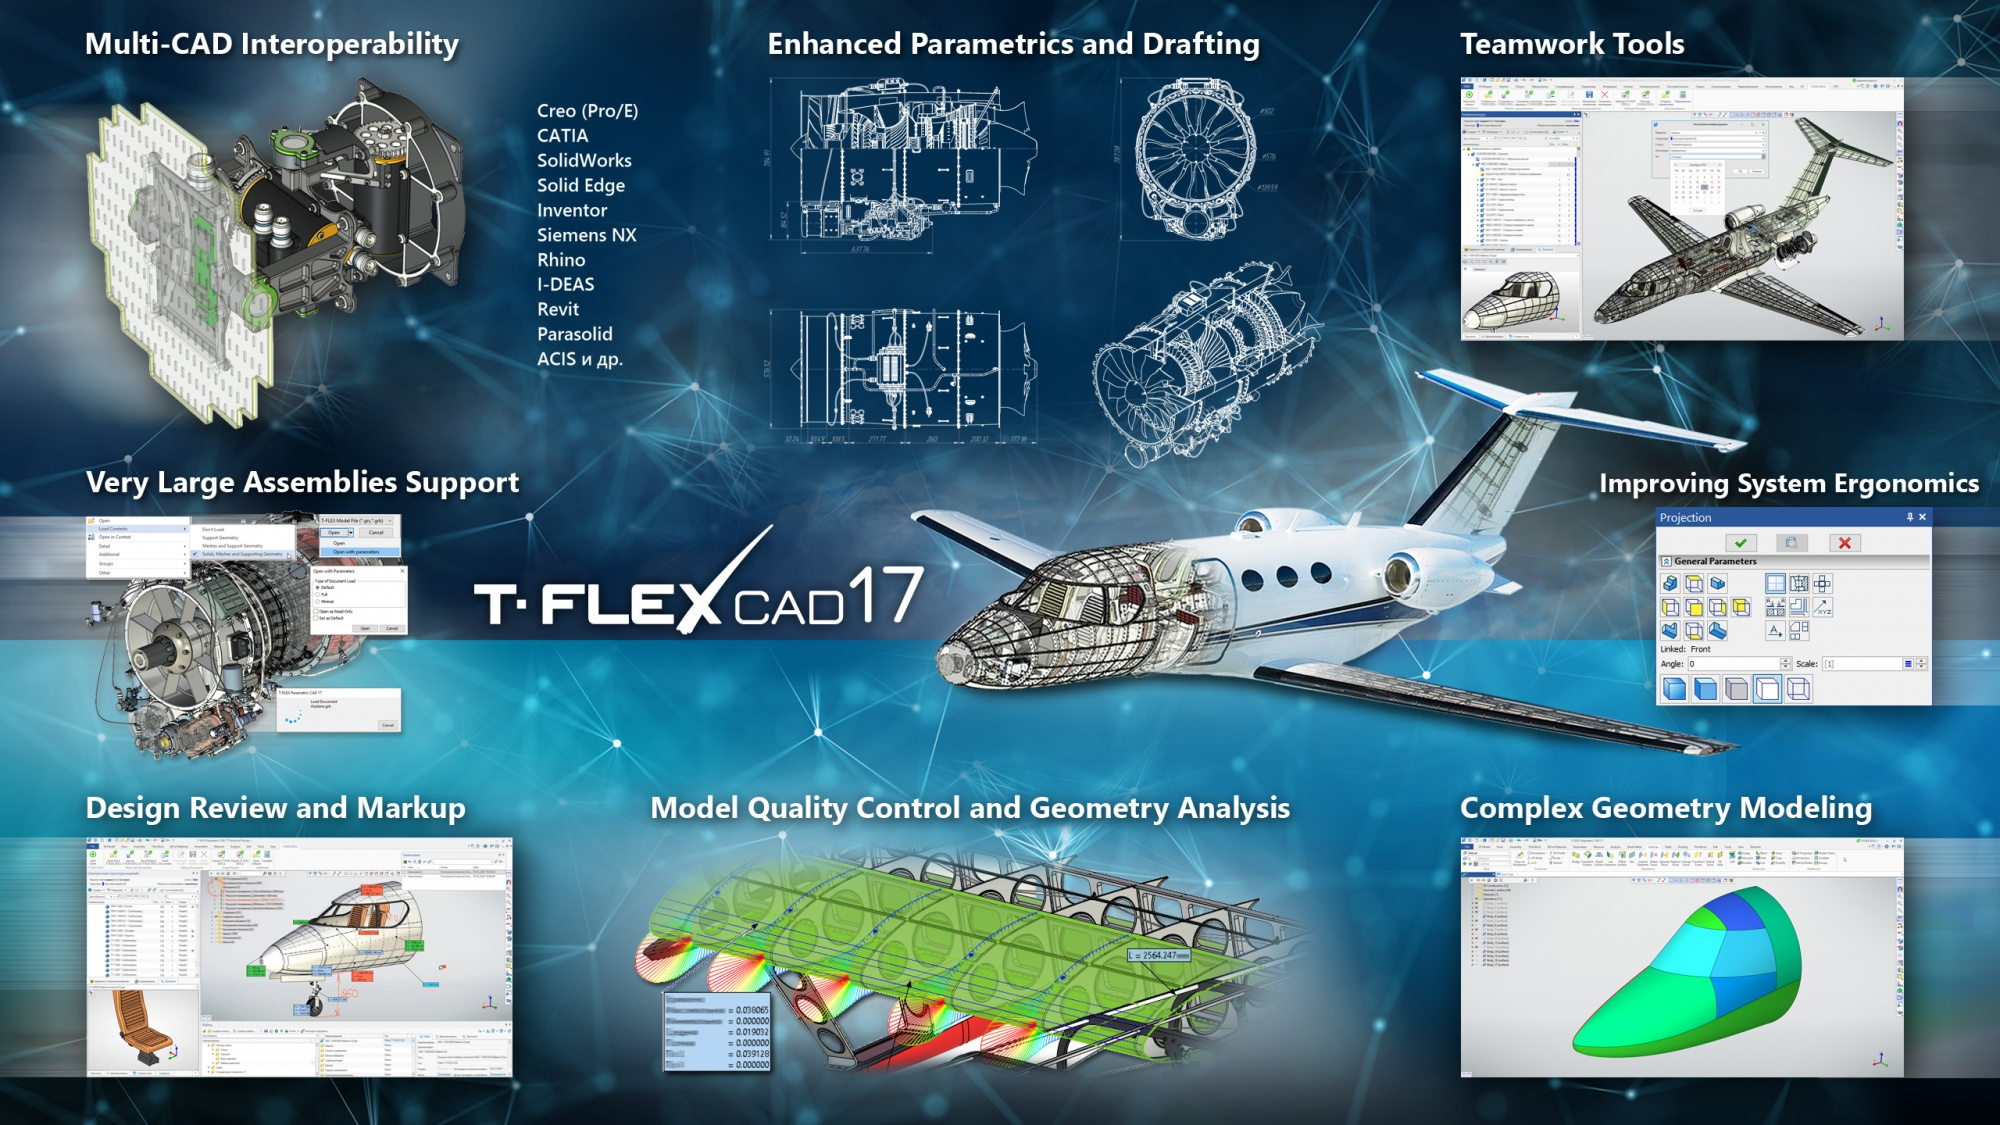 What's new in T-FLEX CAD 17